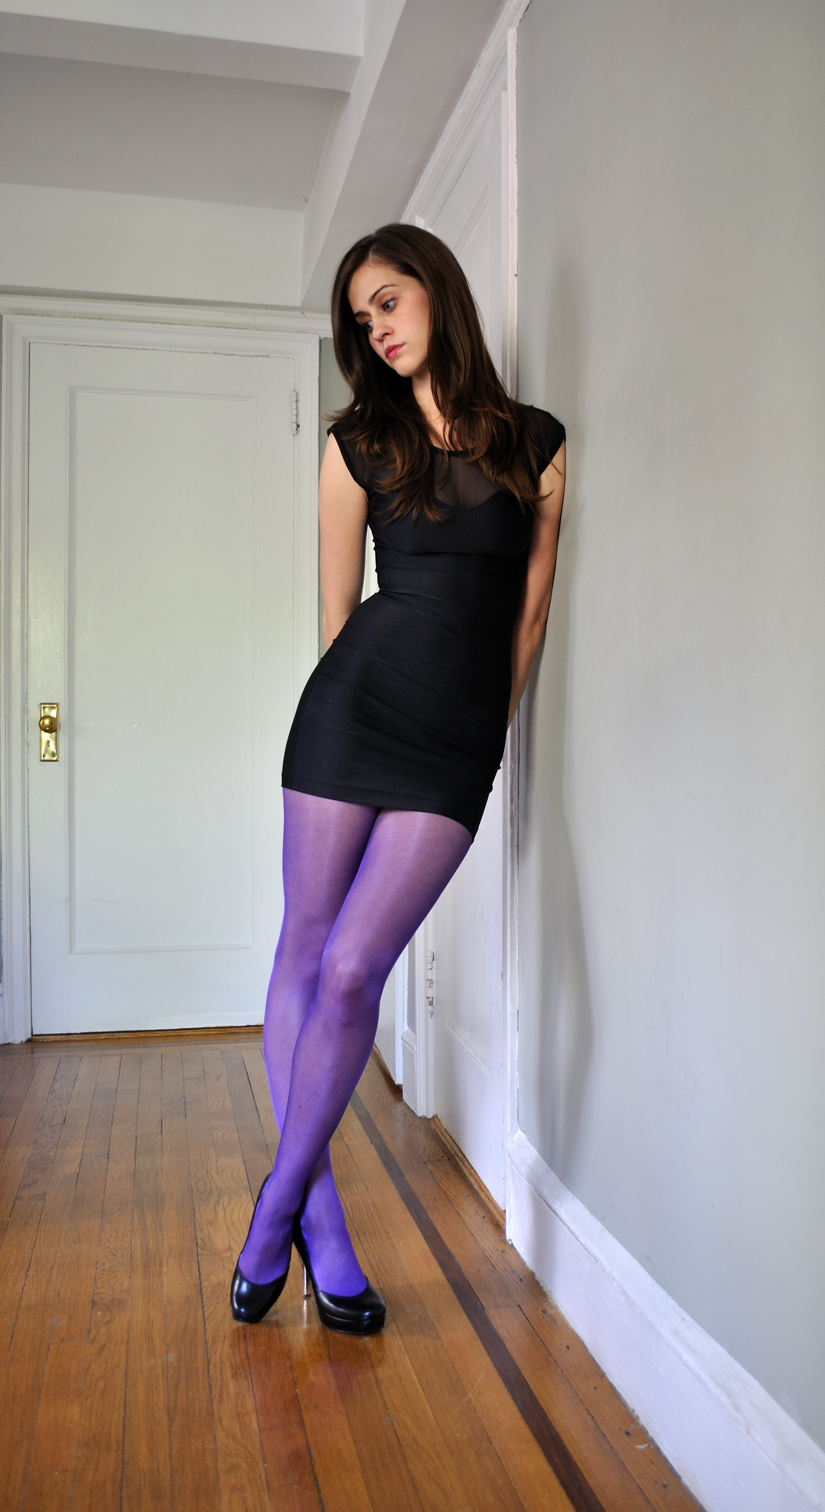 from-girls-in-pantyhose-hosiery-tips-anal-with